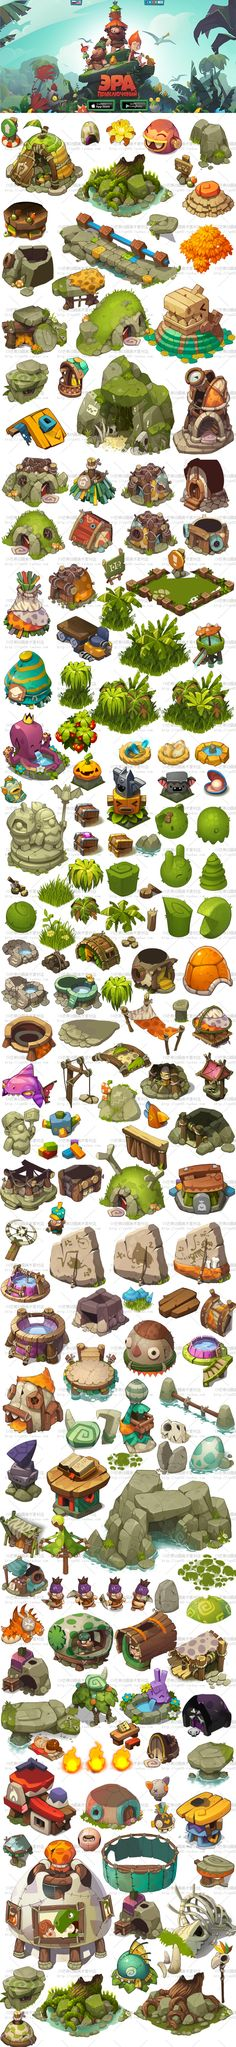 Game art UI environment concept art t Game Design, Prop Design, Design Art, Web Design, Game Environment, Environment Concept Art, Environment Design, Pixel Art, Paint Photoshop